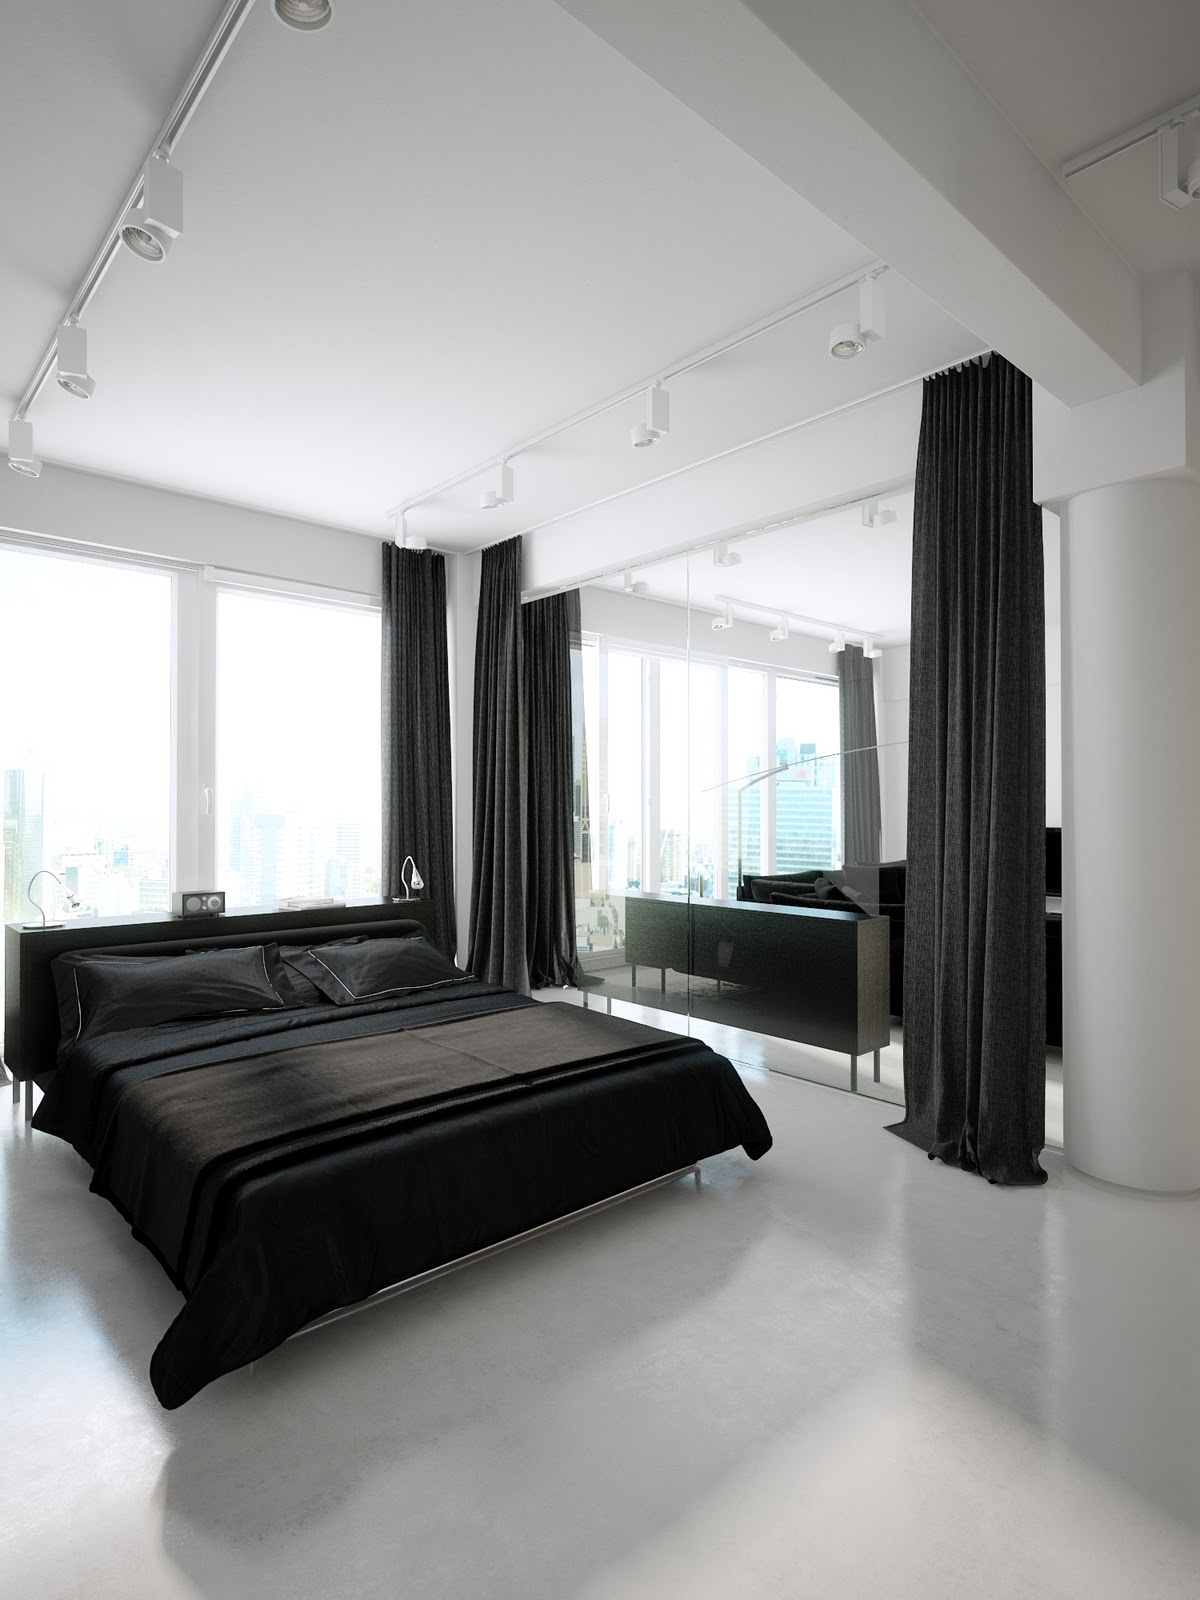 Room decor ideas a luxury version of black white minimalism trend - Having Black And White Dining Room Is Also Possible You Only Need To Place Black Dining Table Whit The Chair In White Wall Roof And Floor